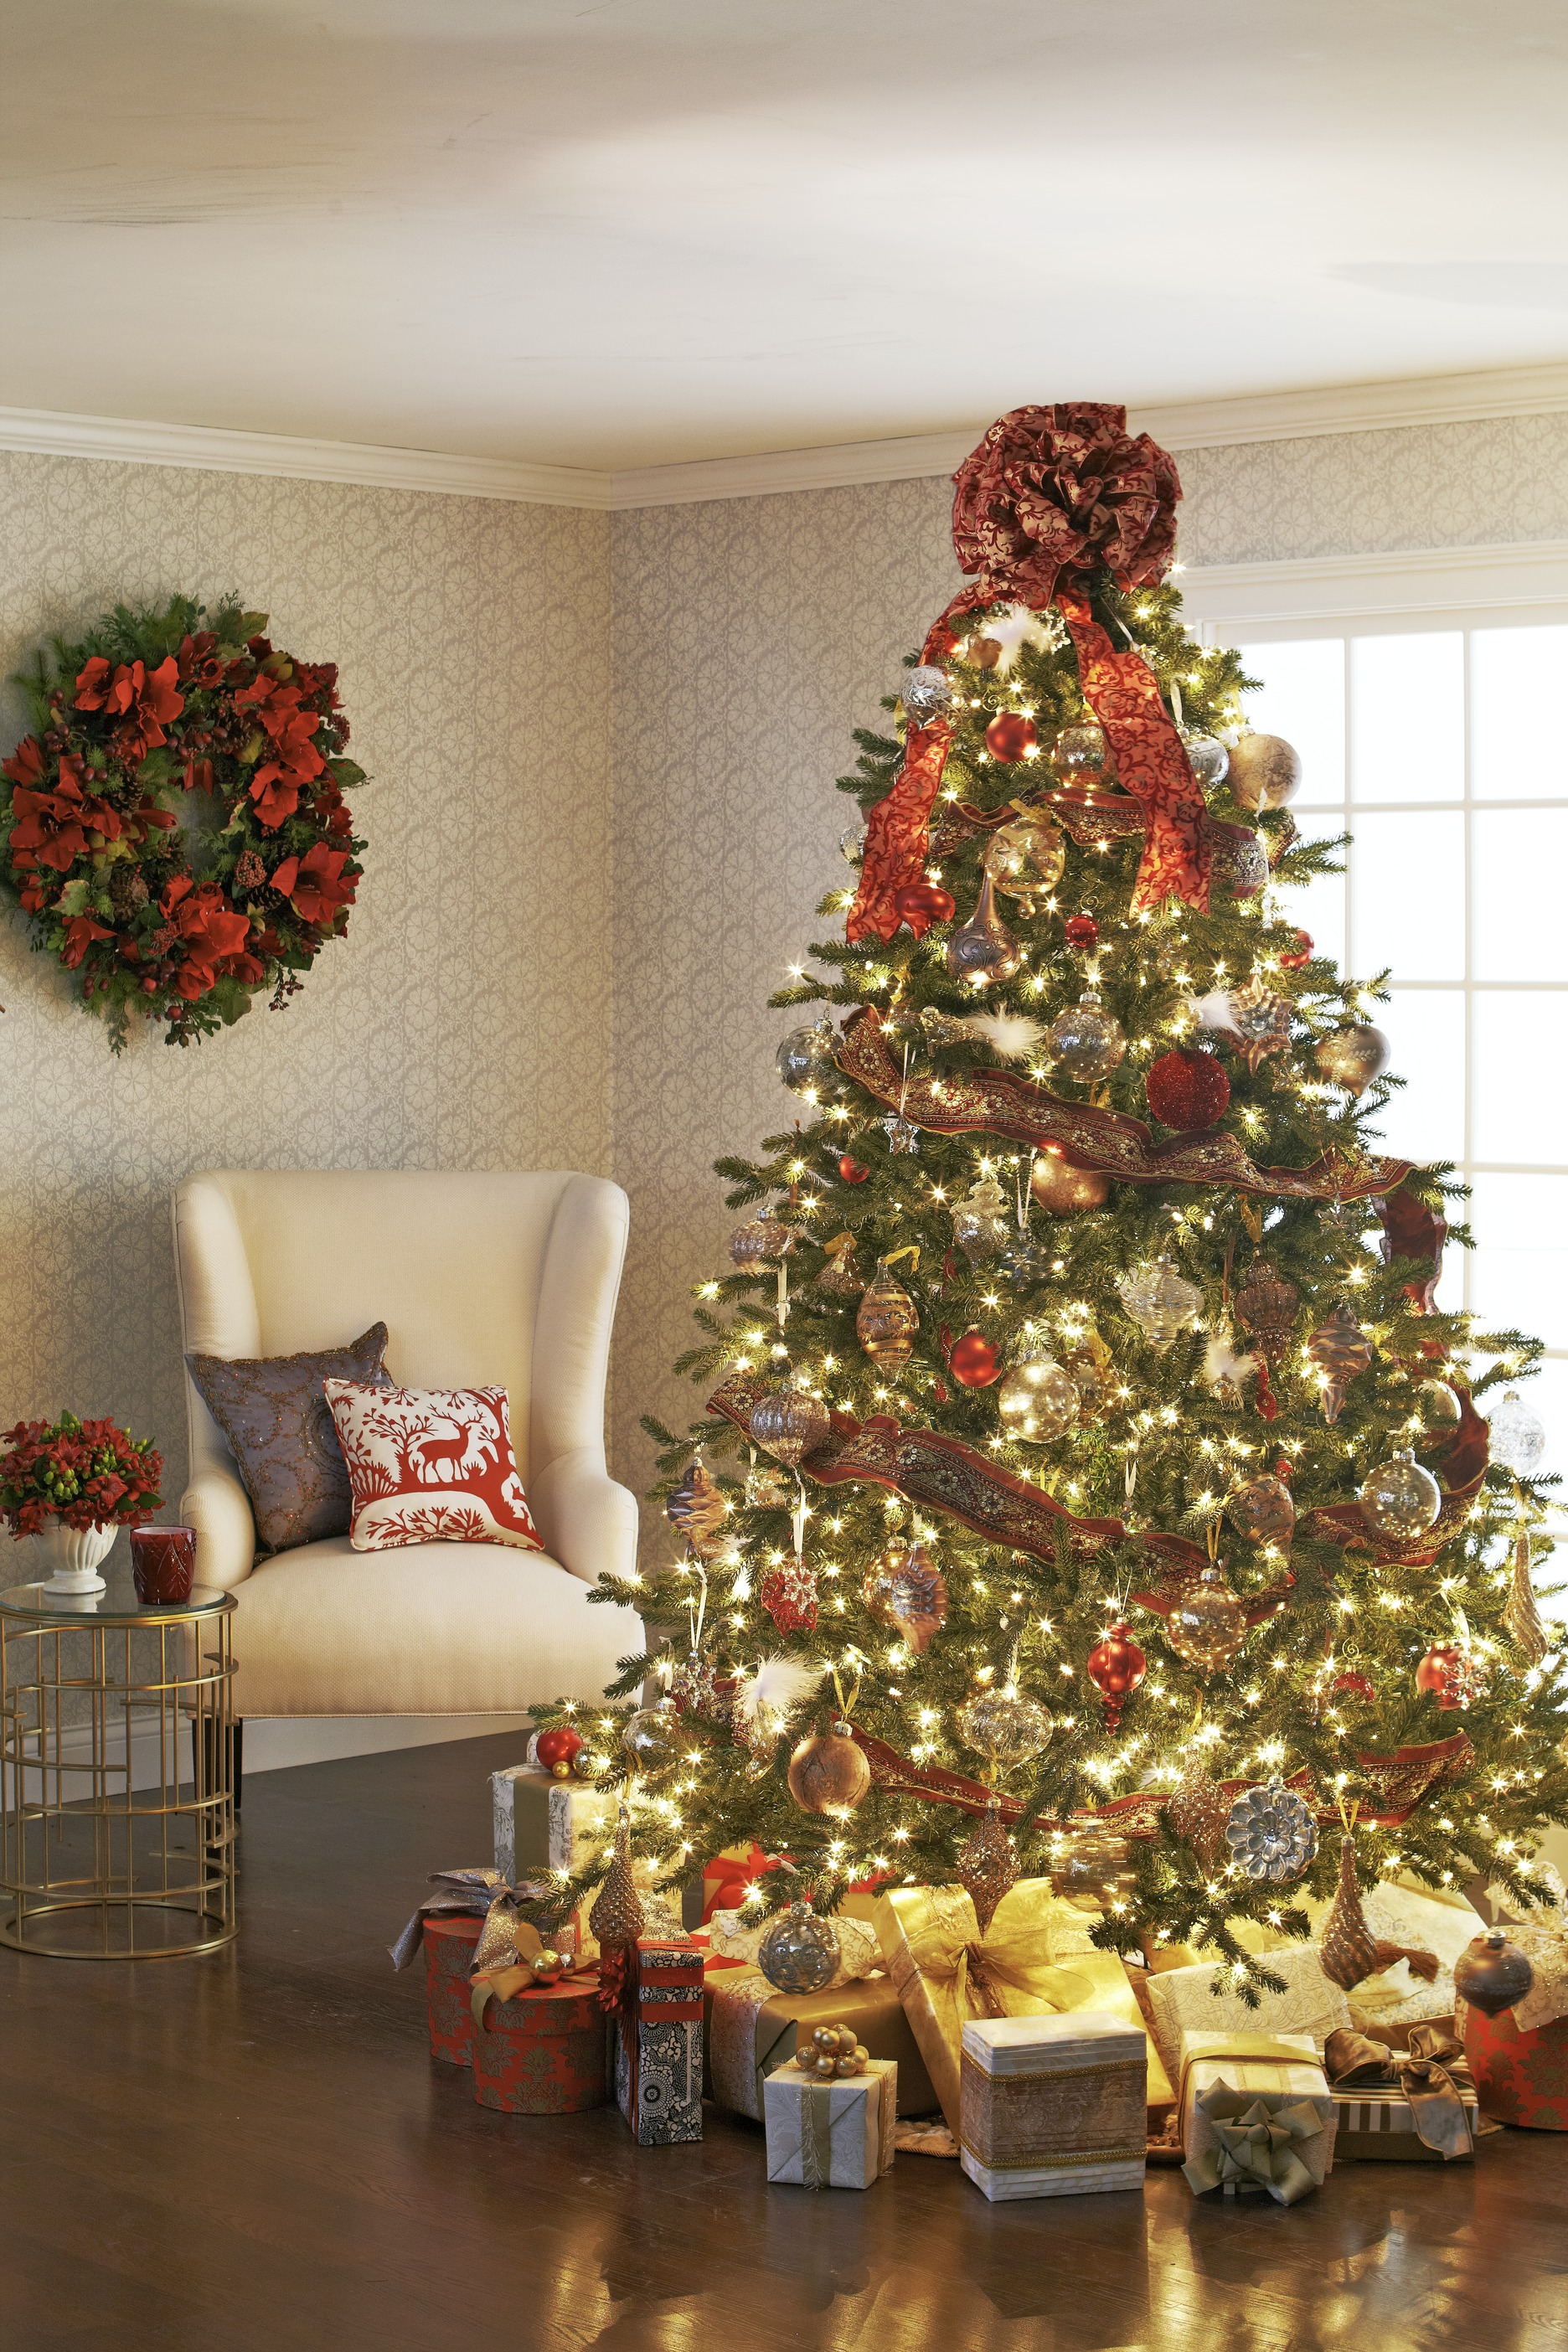 enlarge - Order Of Decorating A Christmas Tree